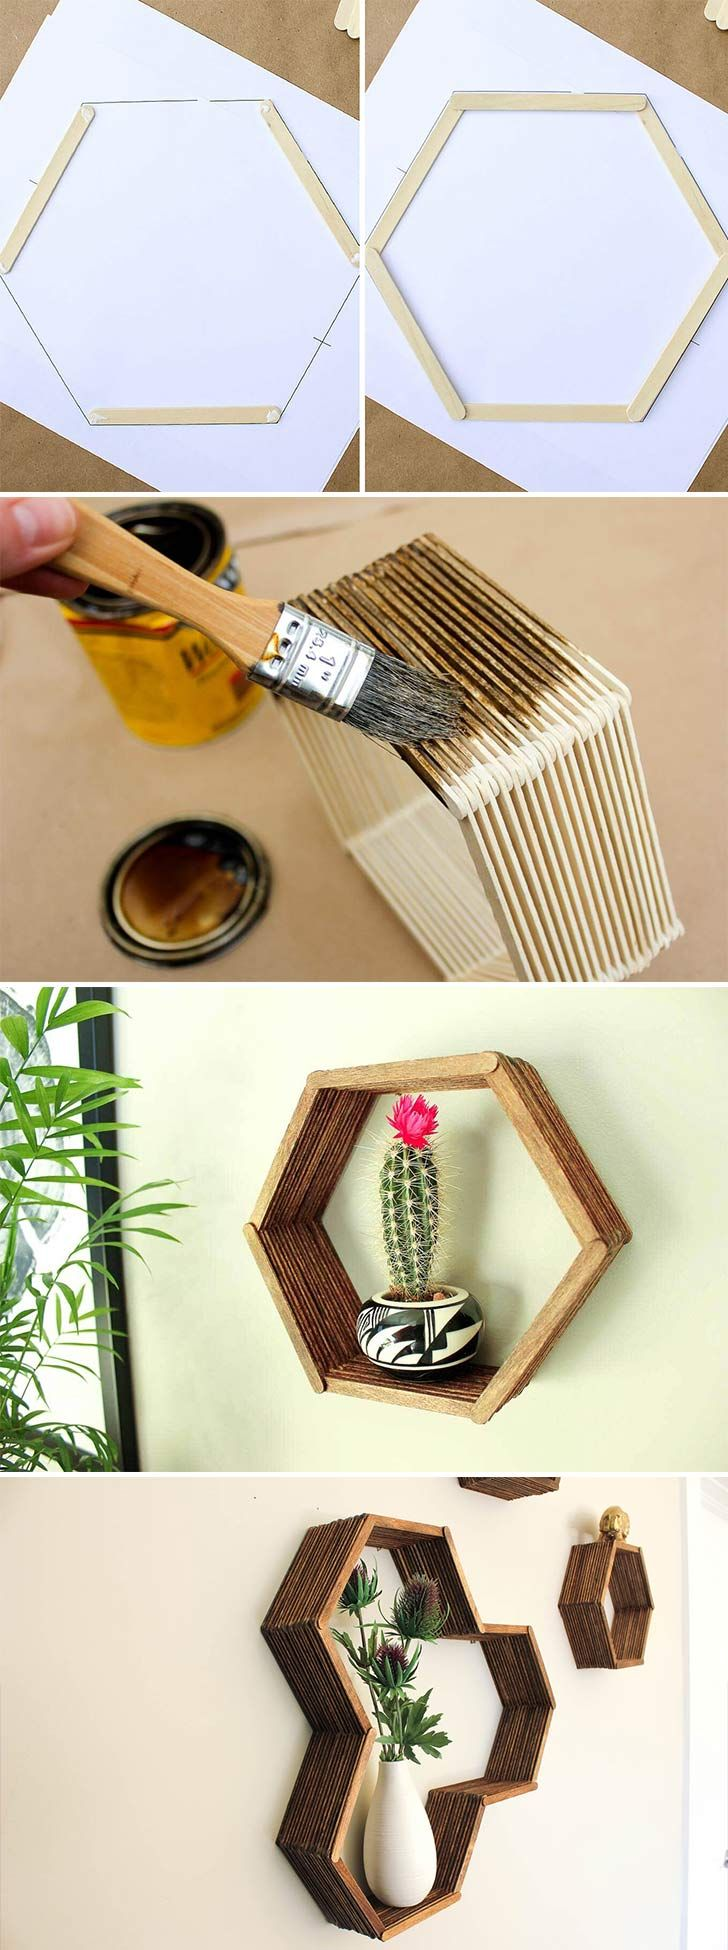 shelf diy click on image to see more diy crafts for your home